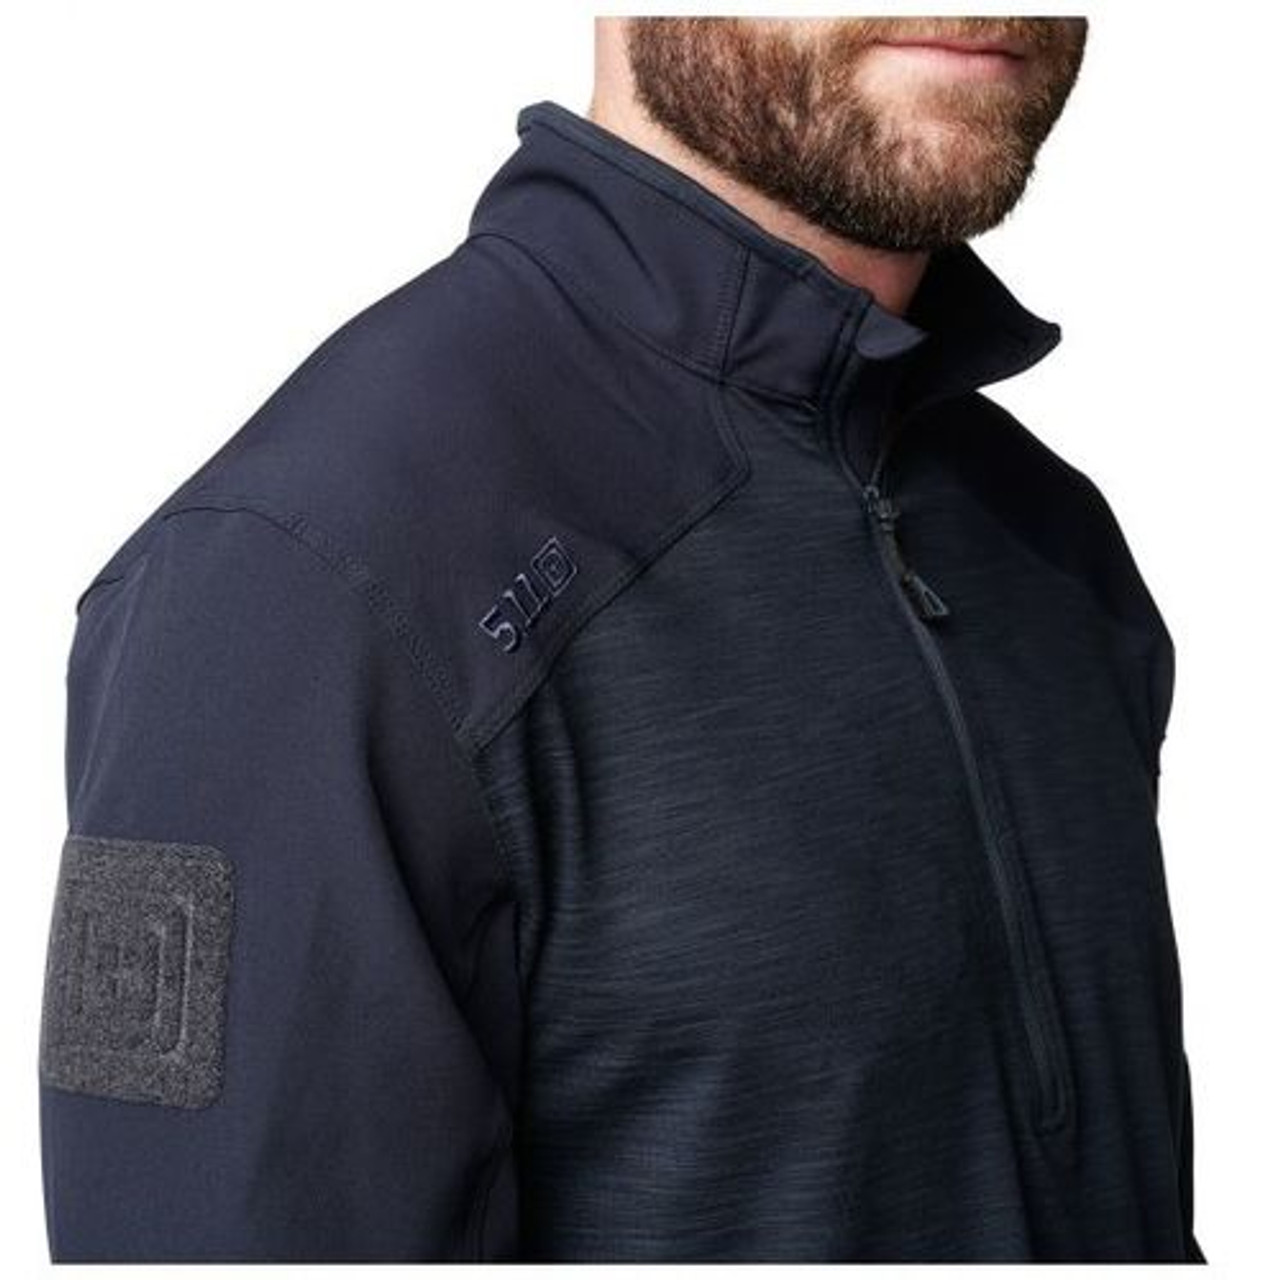 6533defef 5.11 Tactical MEN'S PULLOVER RAPID 1/4 ZIP, Moisture wicking and quick  drying,